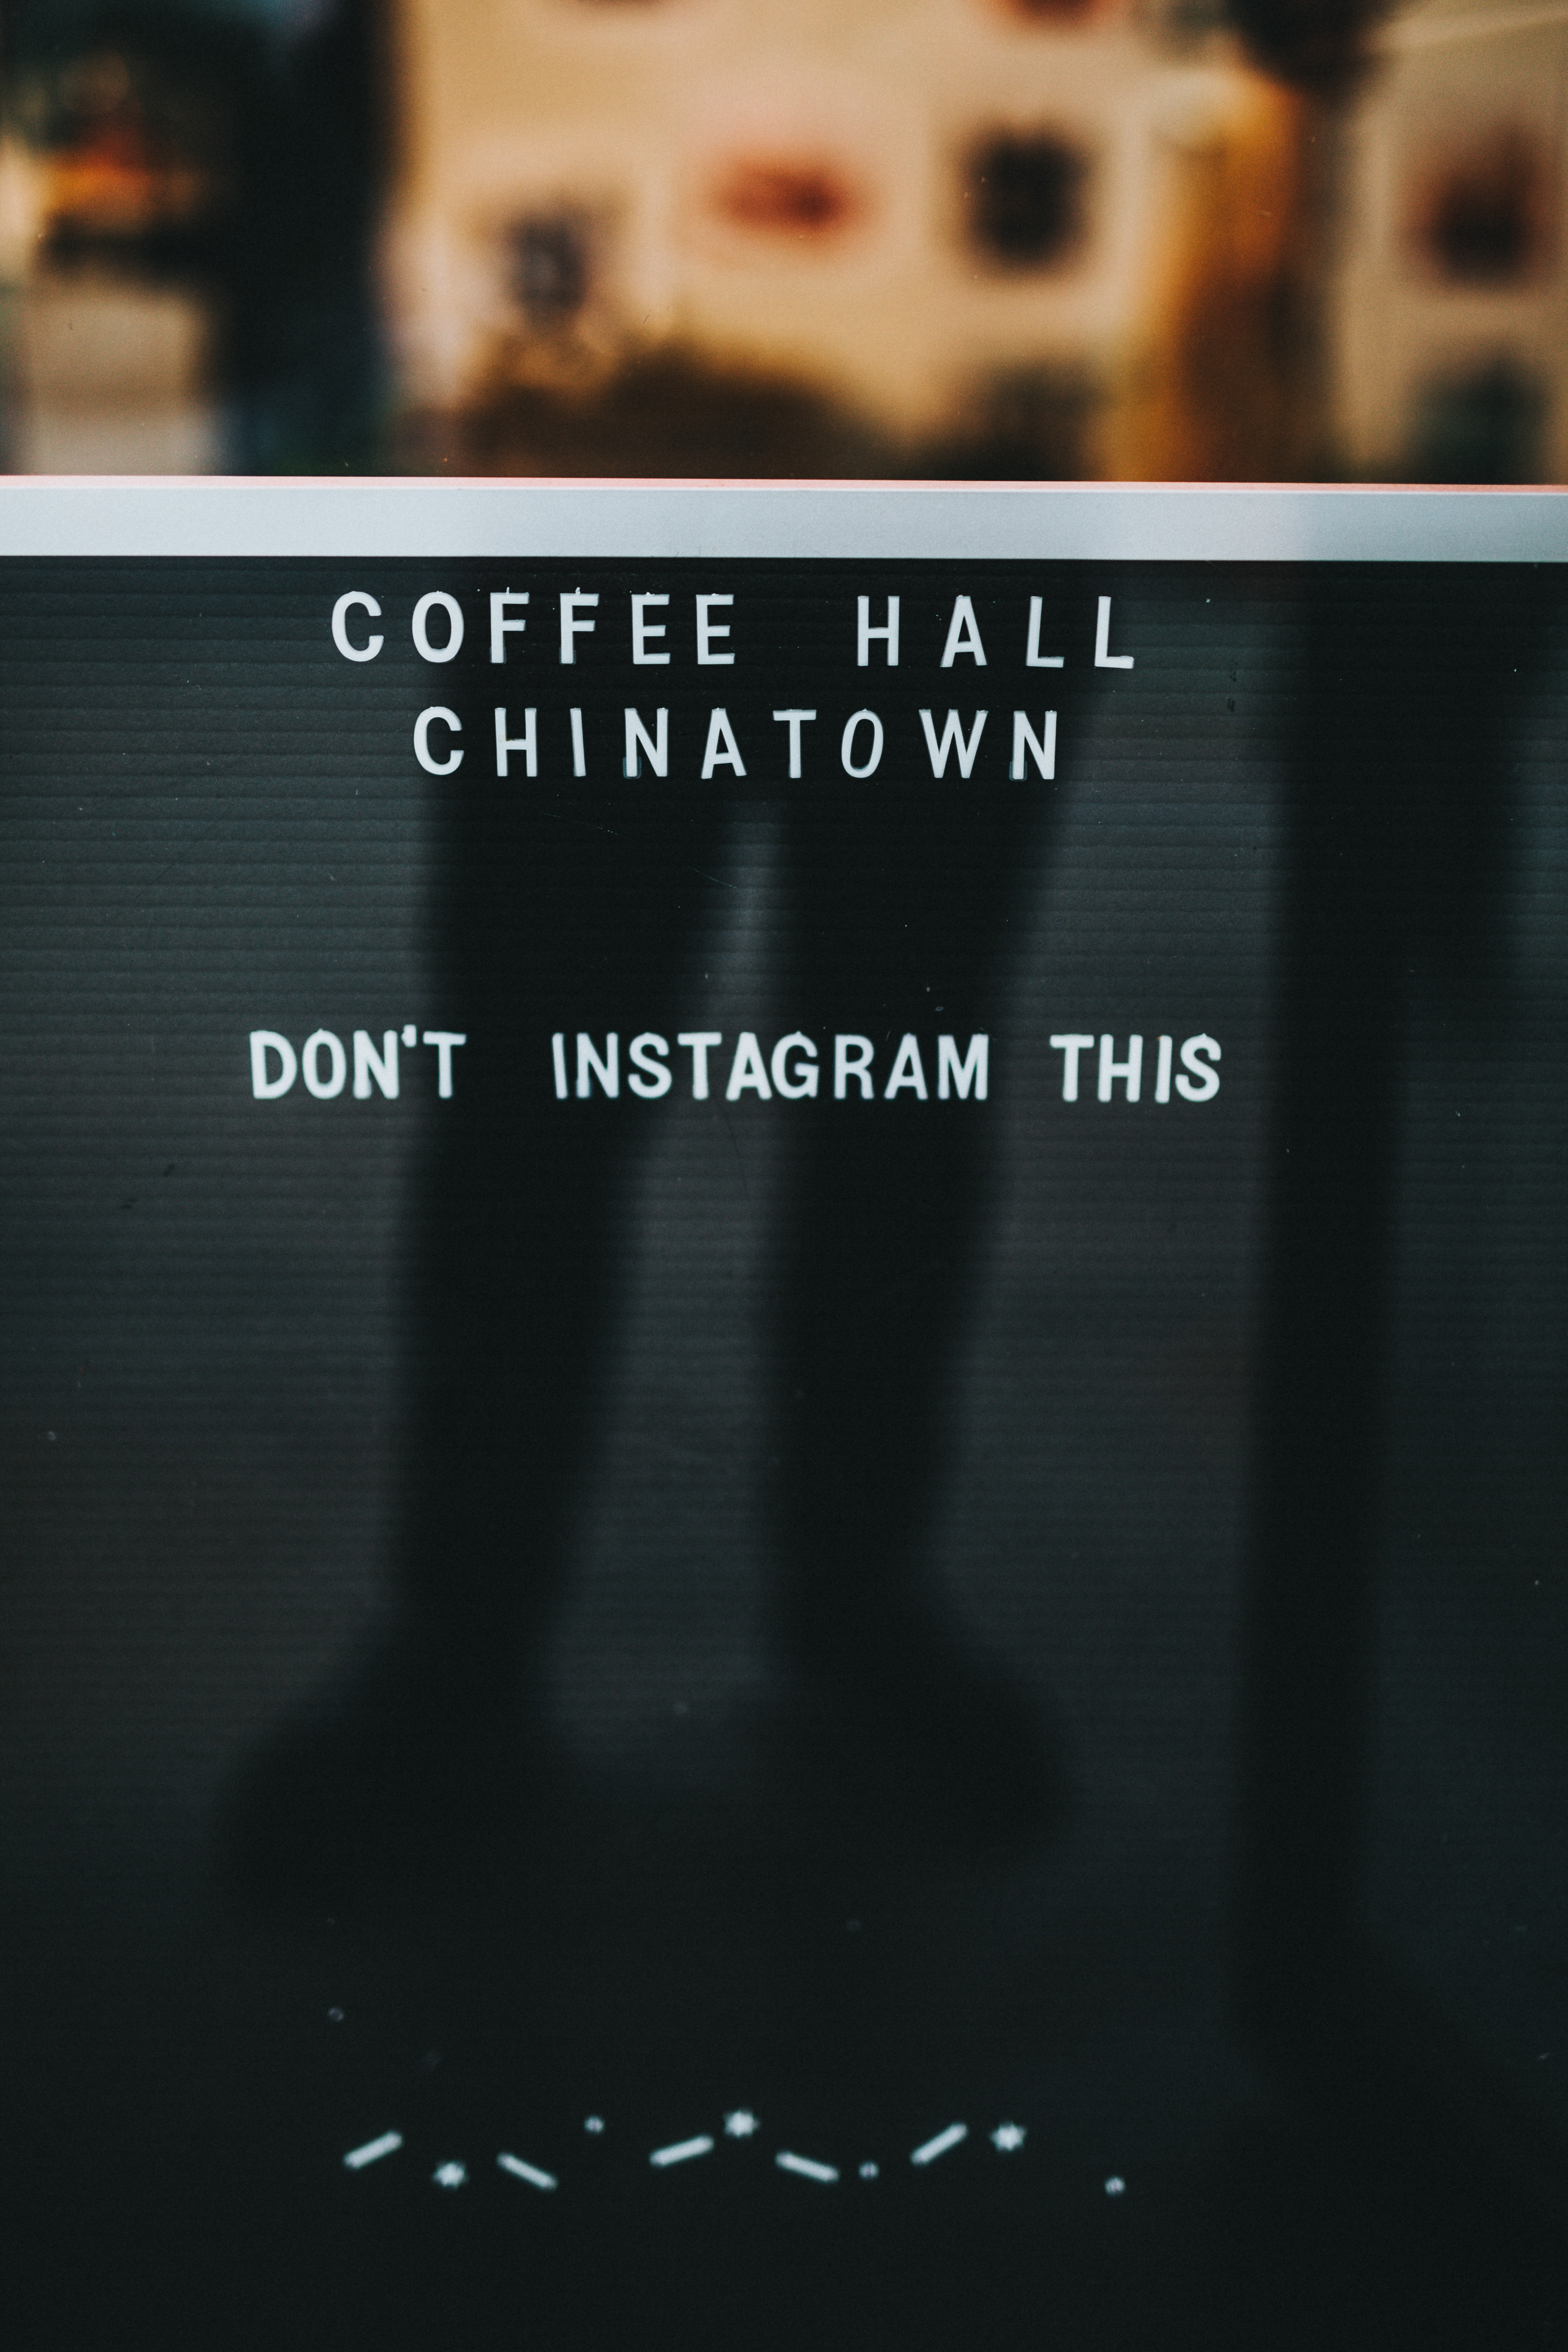 Coffee Hall Chinatown signage